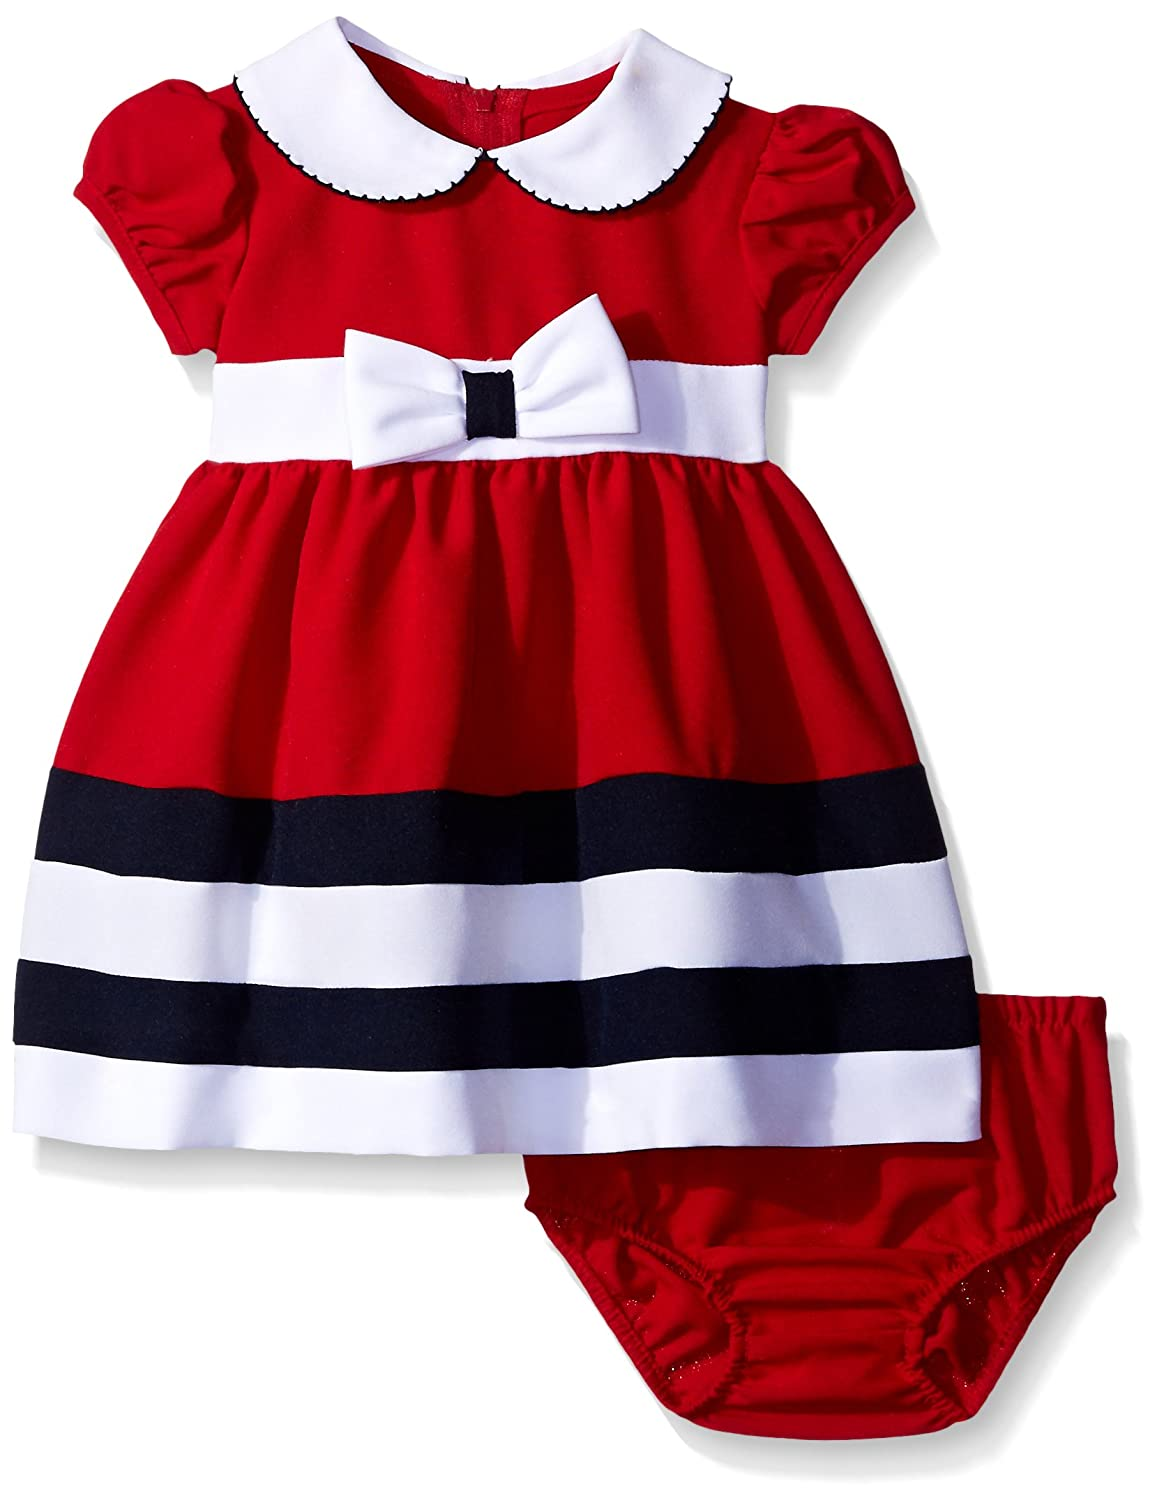 Bonnie Baby Peter Pan Collar Nautical Dress and Panty Set P000494919